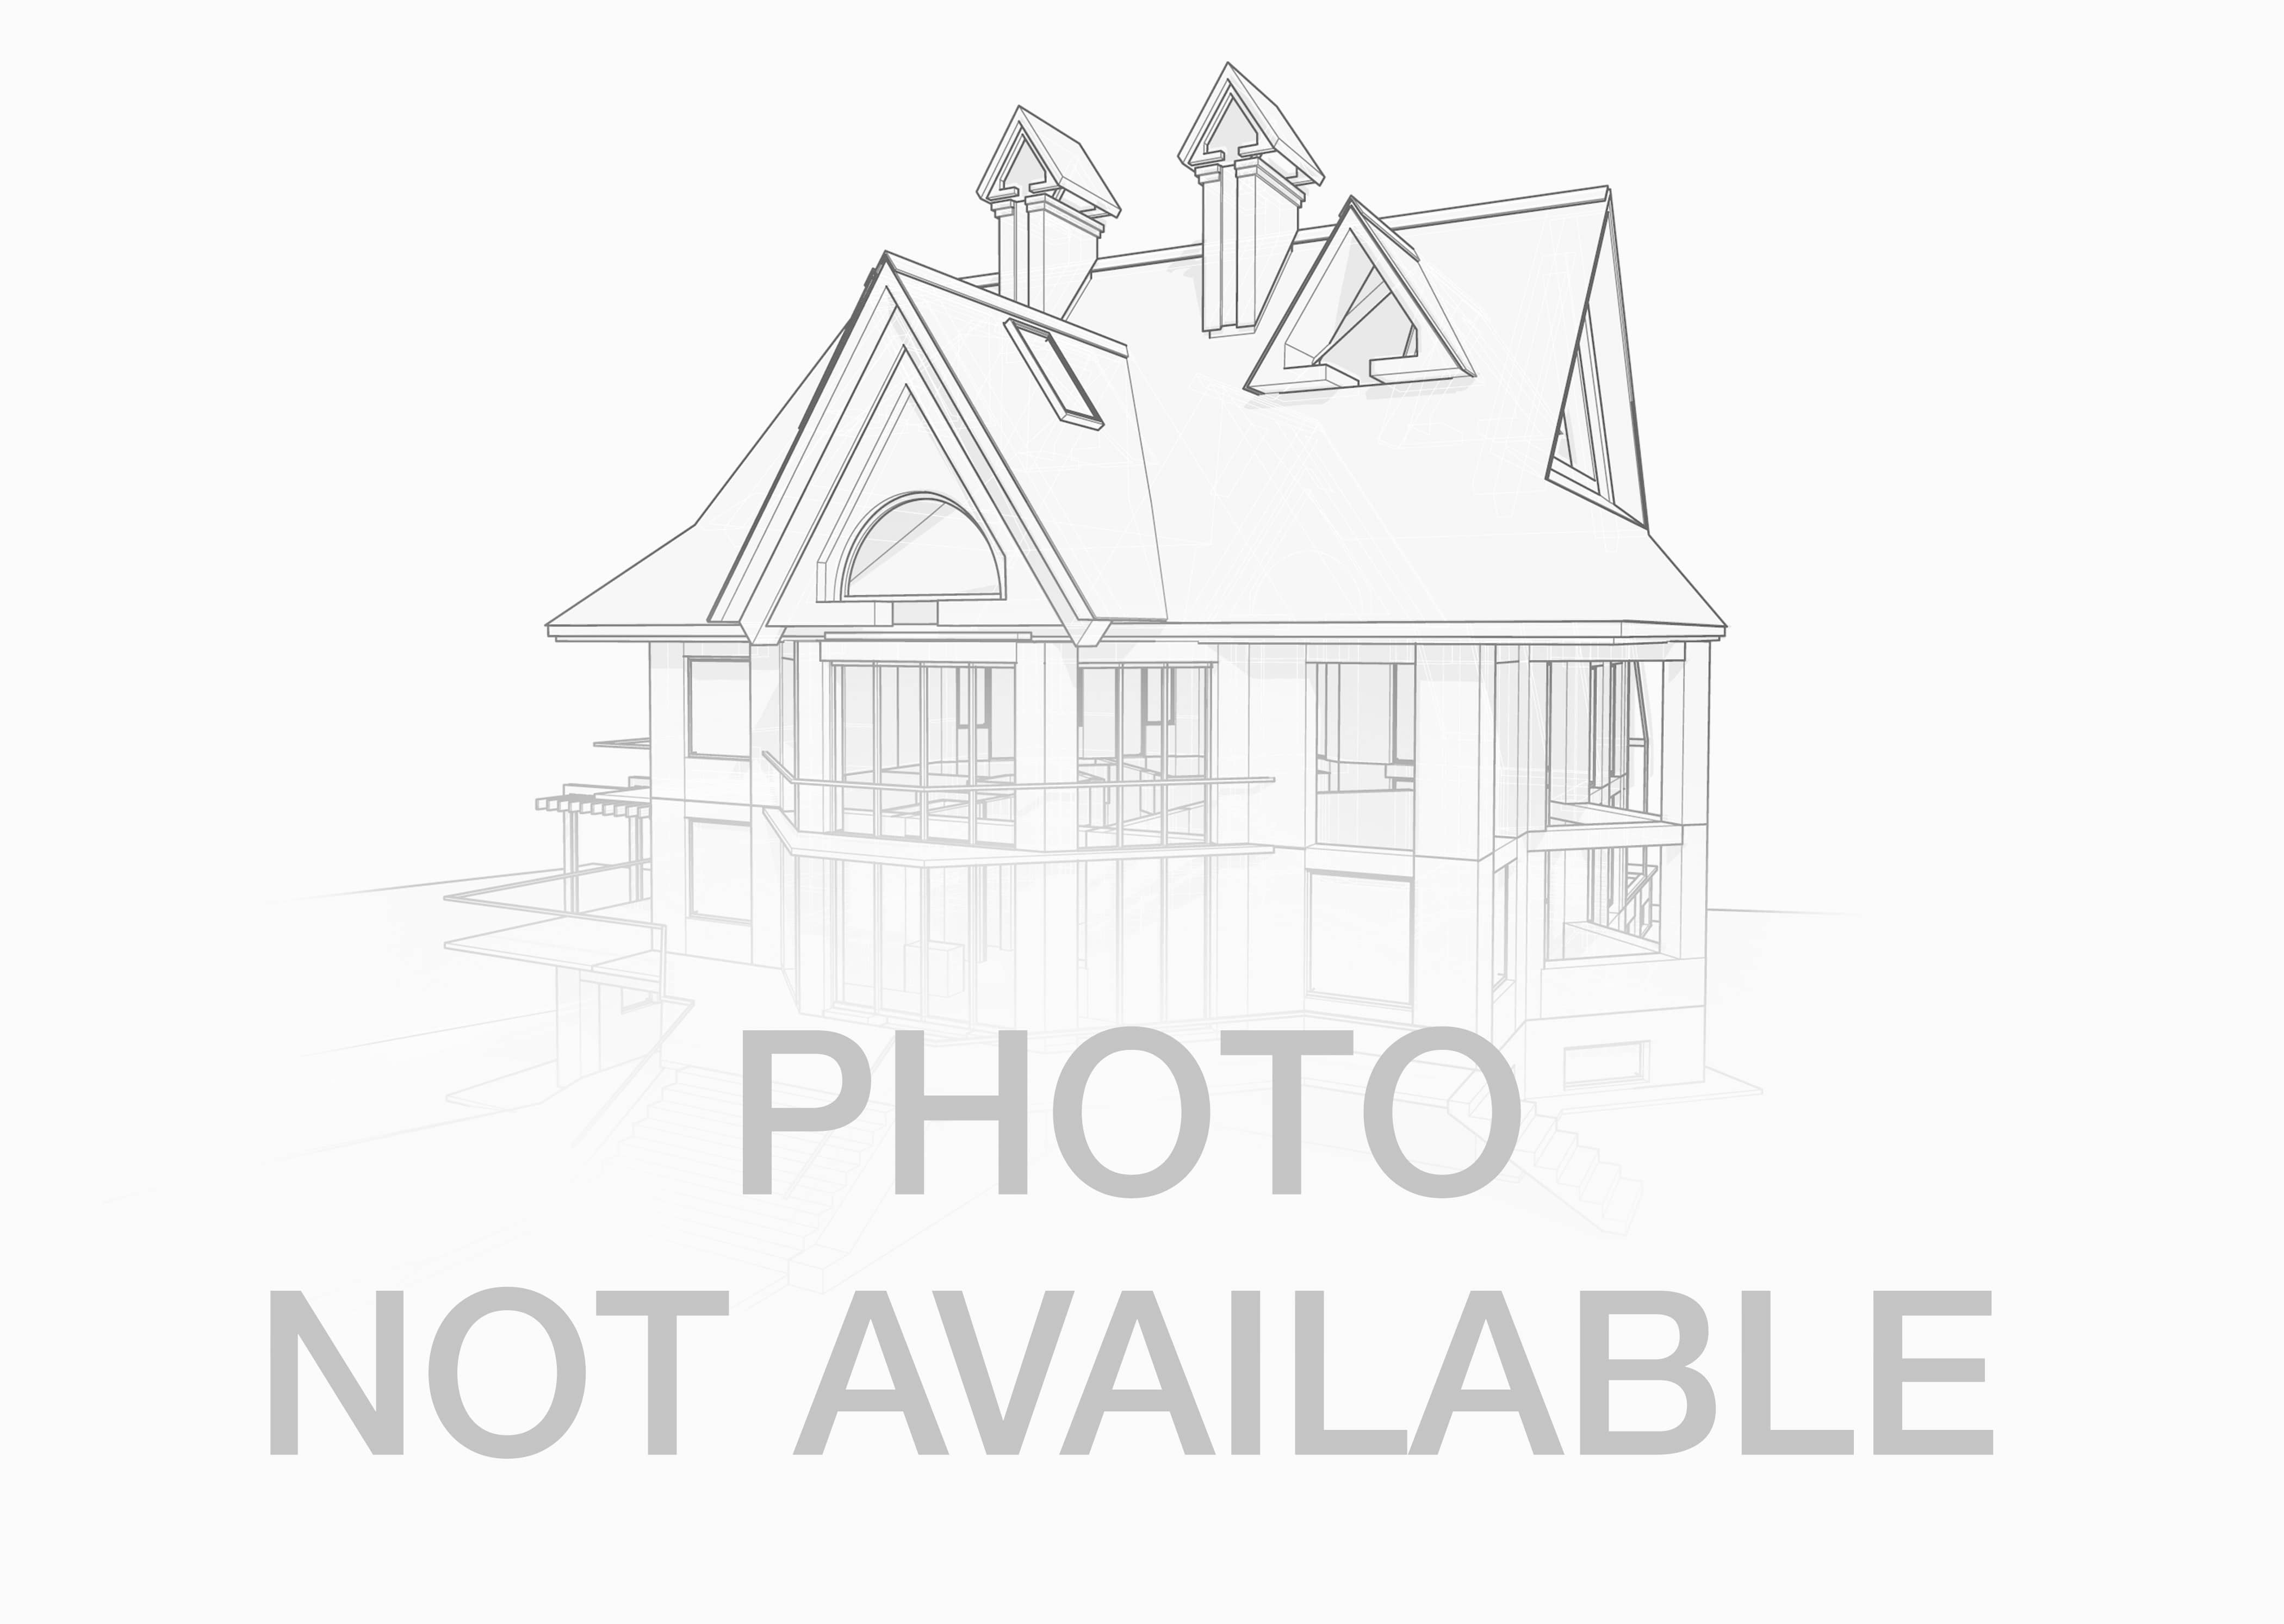 4050 Lakeview Dr, Sebring, FL 33870 - MLS ID 248573 on